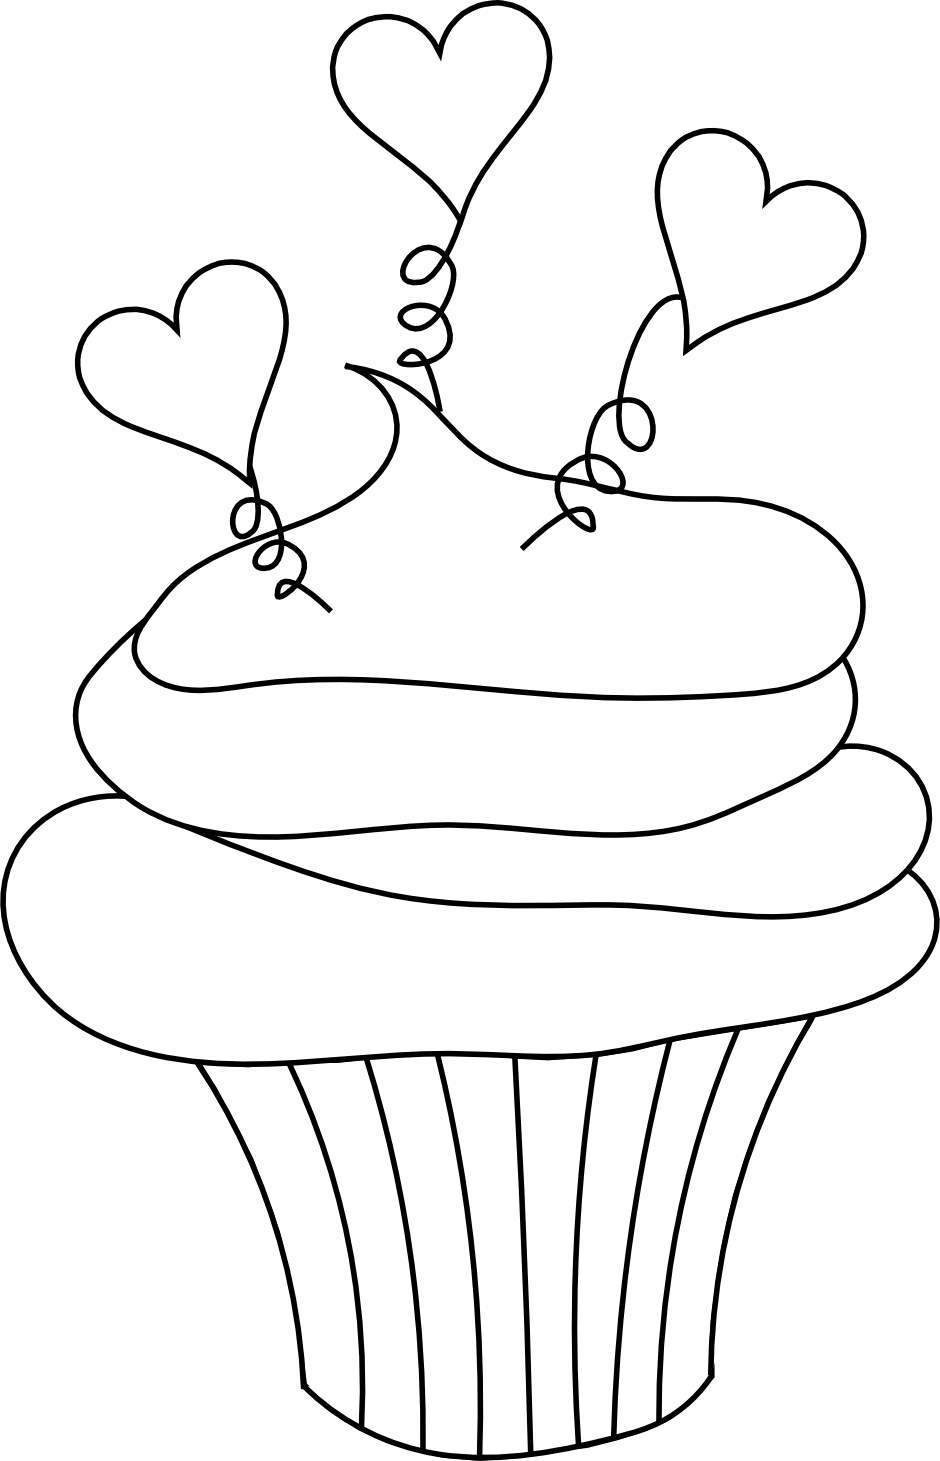 heart cake coloring pages free valentine heart clipart cupcake coloring pages heart cake pages coloring